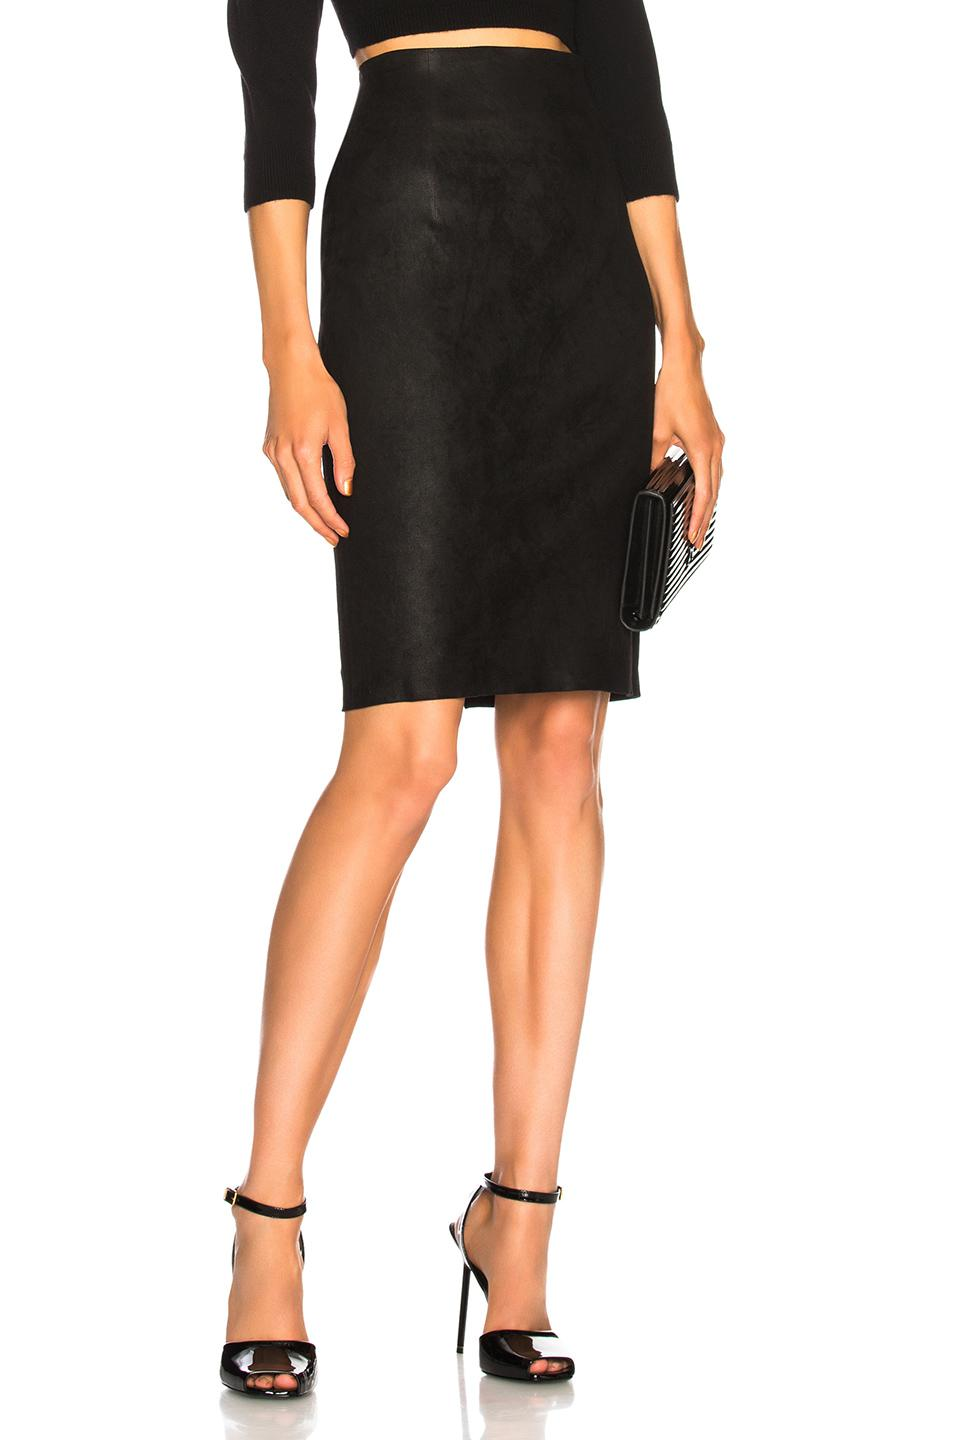 Get this leather pencil skirt which makes you look gorgeous and stunning. Made from lamb leather this pencil skirt features with high waist which make this skirt look attractive. Thus this is a perfect corporate wear that you must try. This leather skirt has back zipper and also has paneled design.